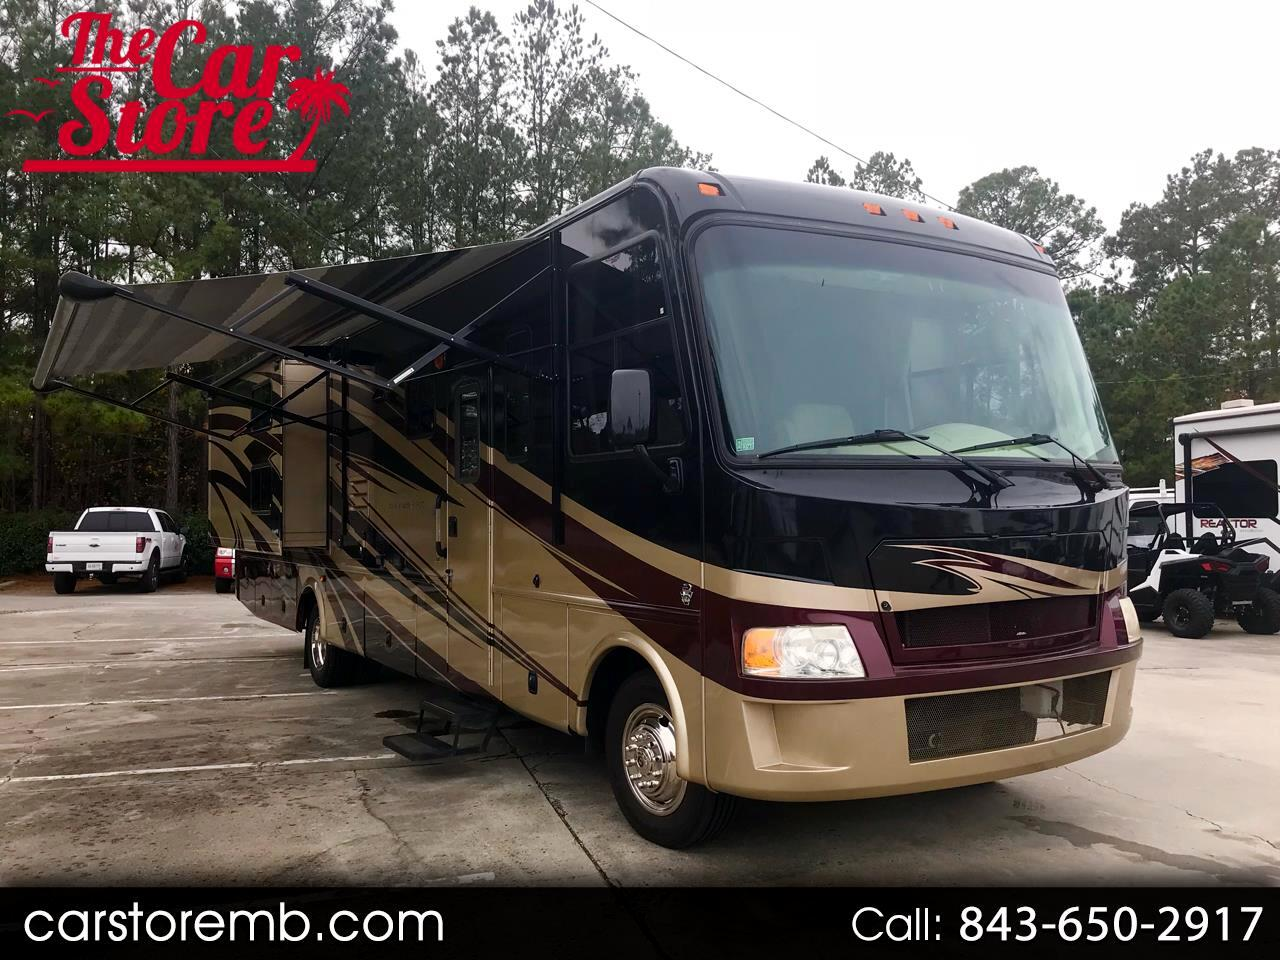 2011 Ford Stripped Chassis Motorhome Damon DayBreak 35BD